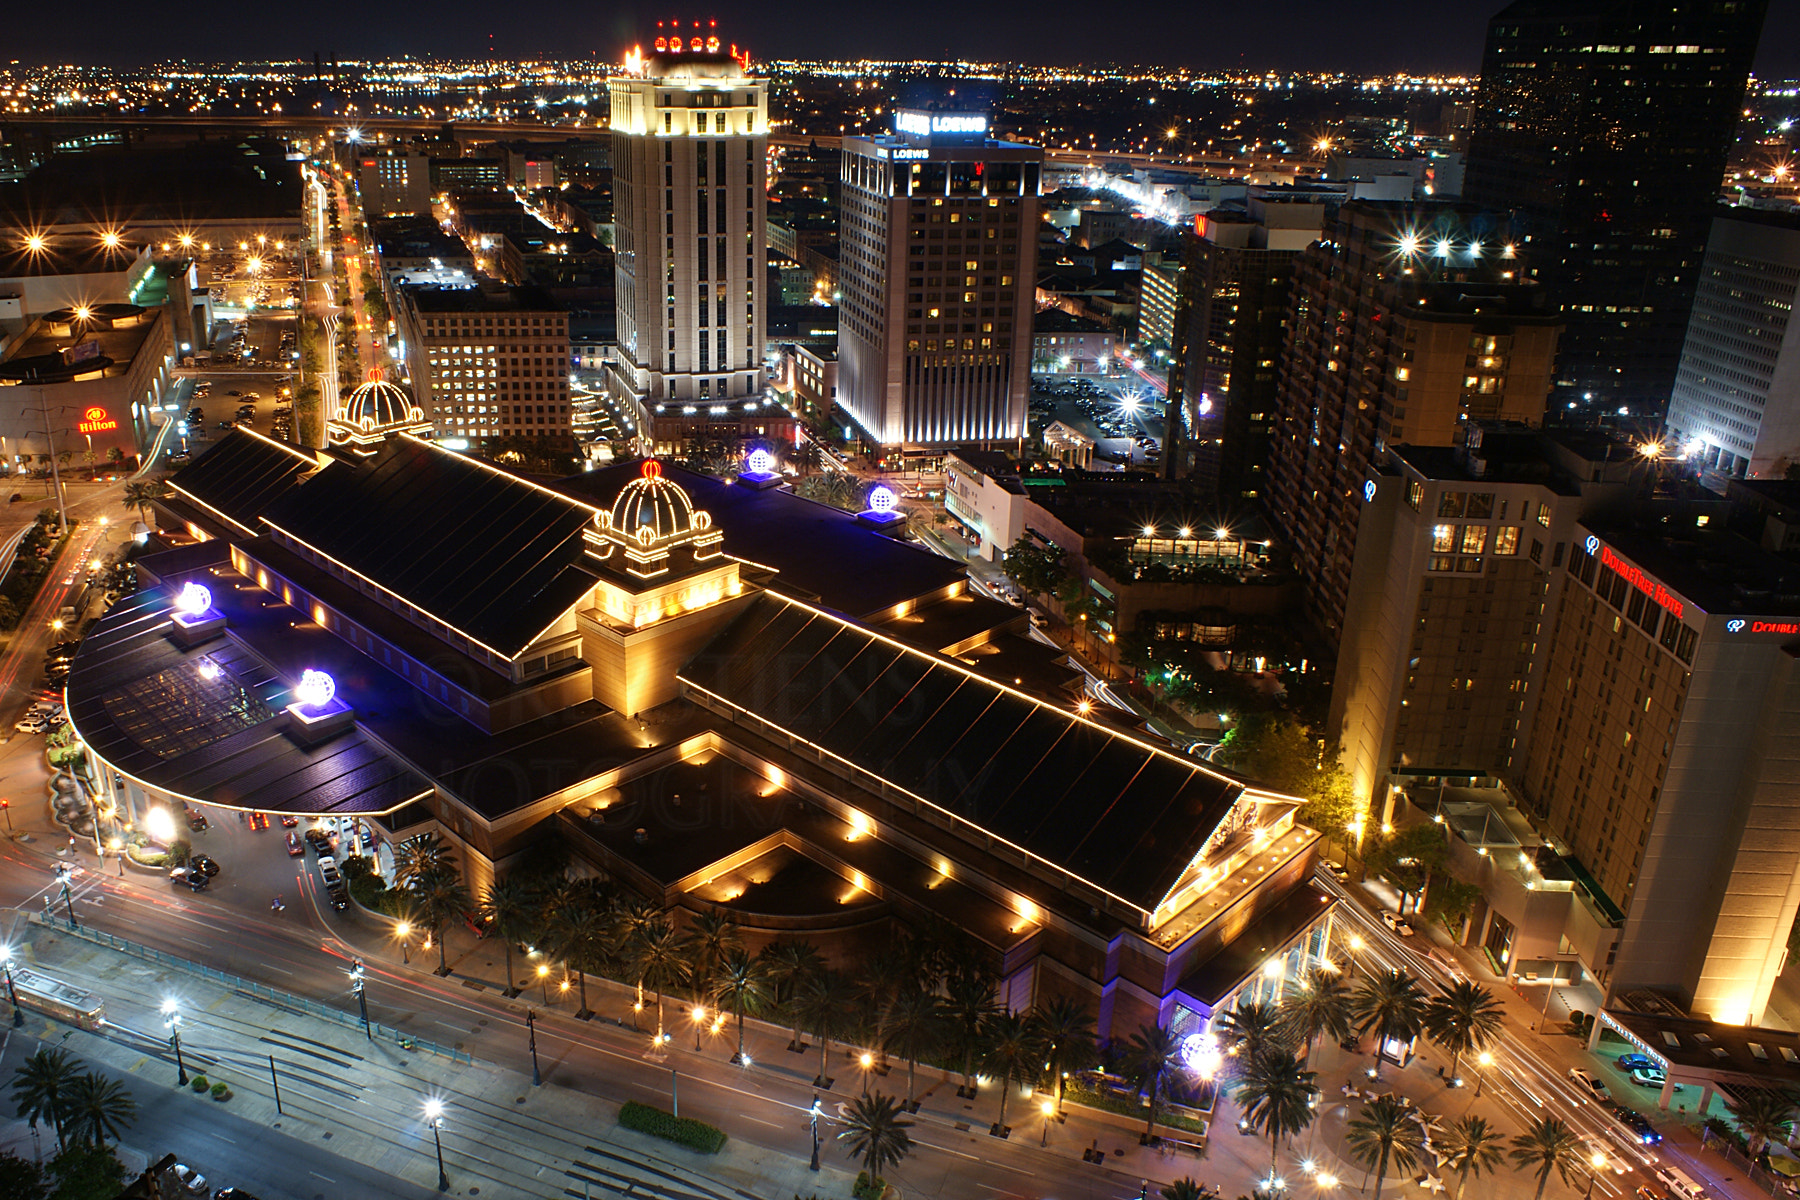 Photograph Harrah's Casino at Night by Stephen Kerstiens on 500px